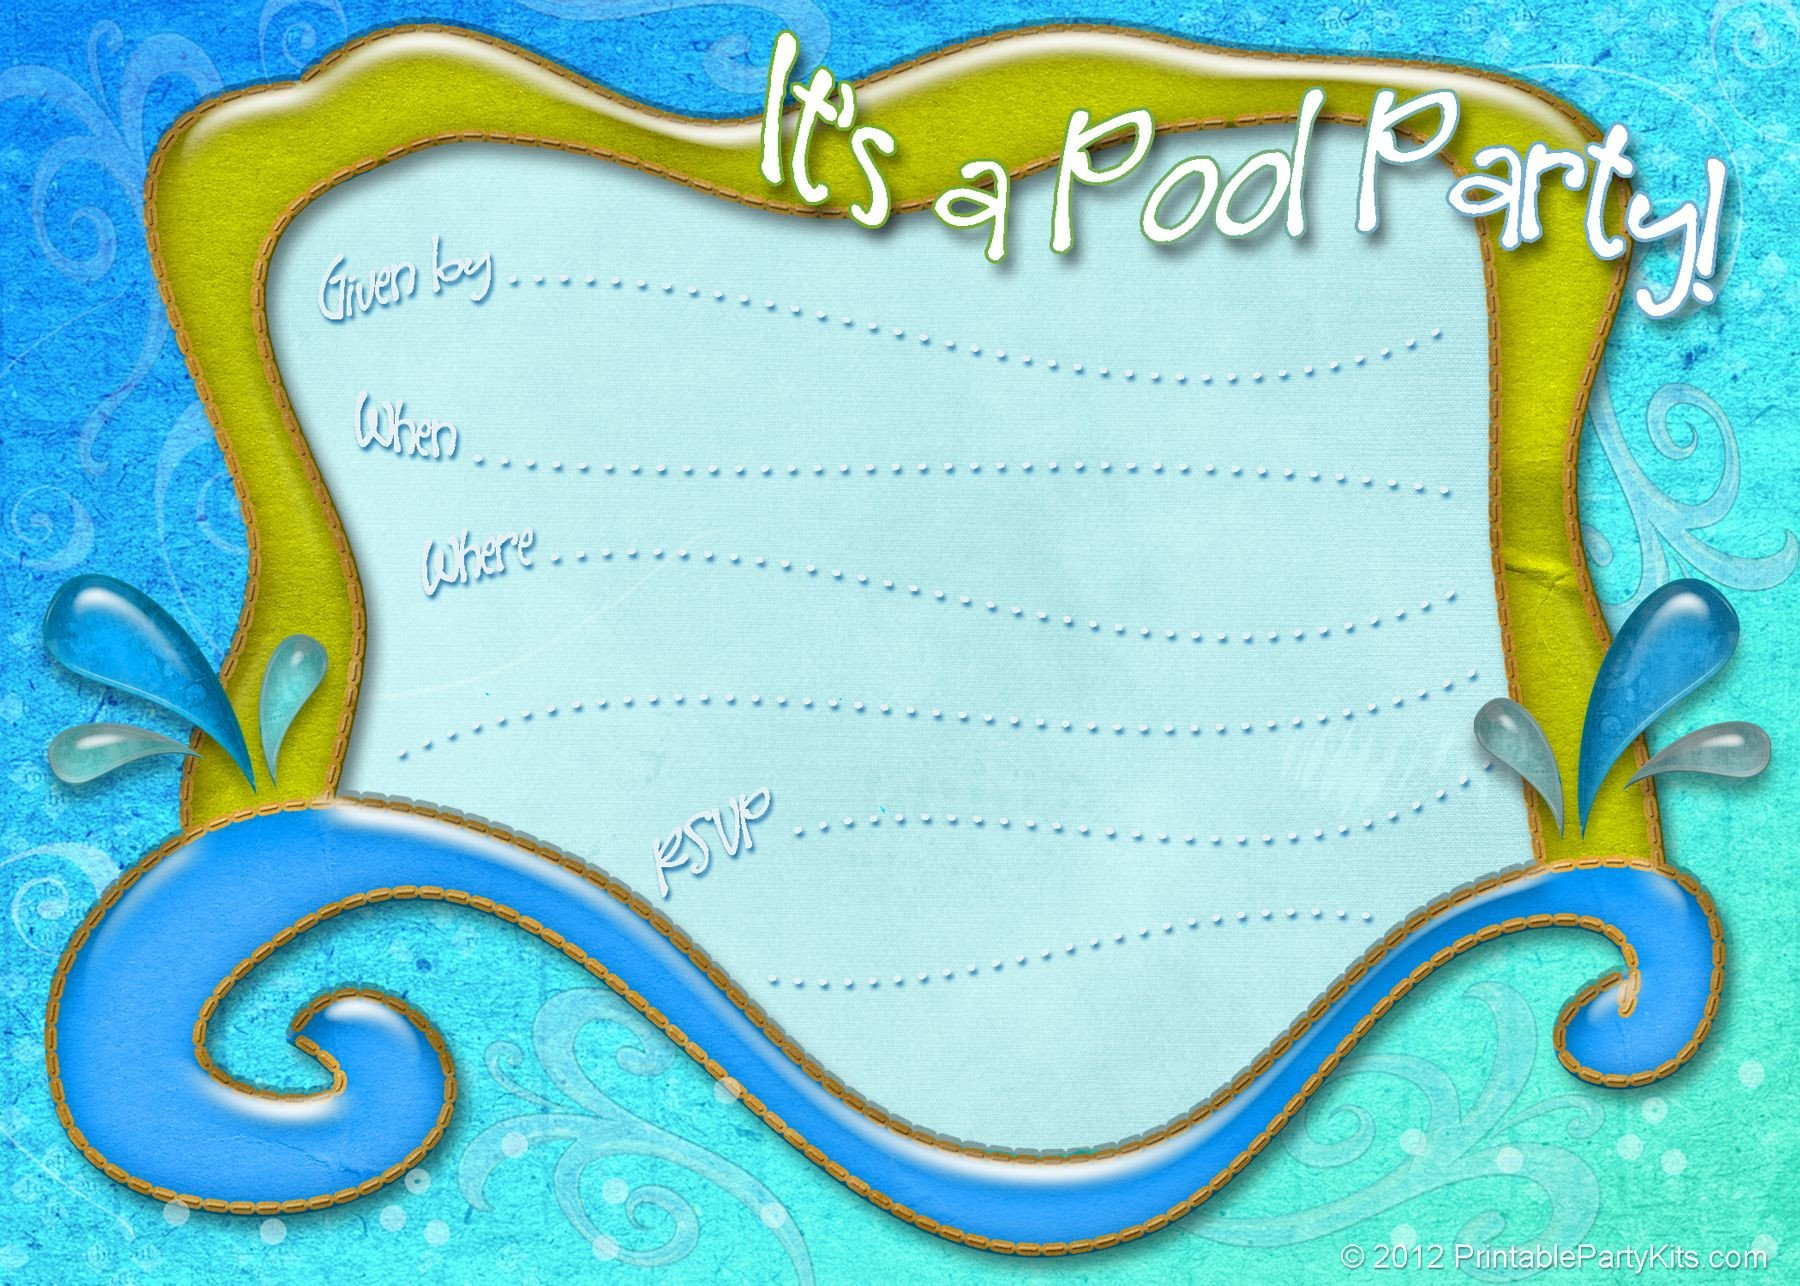 Pool Party Invitations Template Free Printable Pool Party Invitation Template From